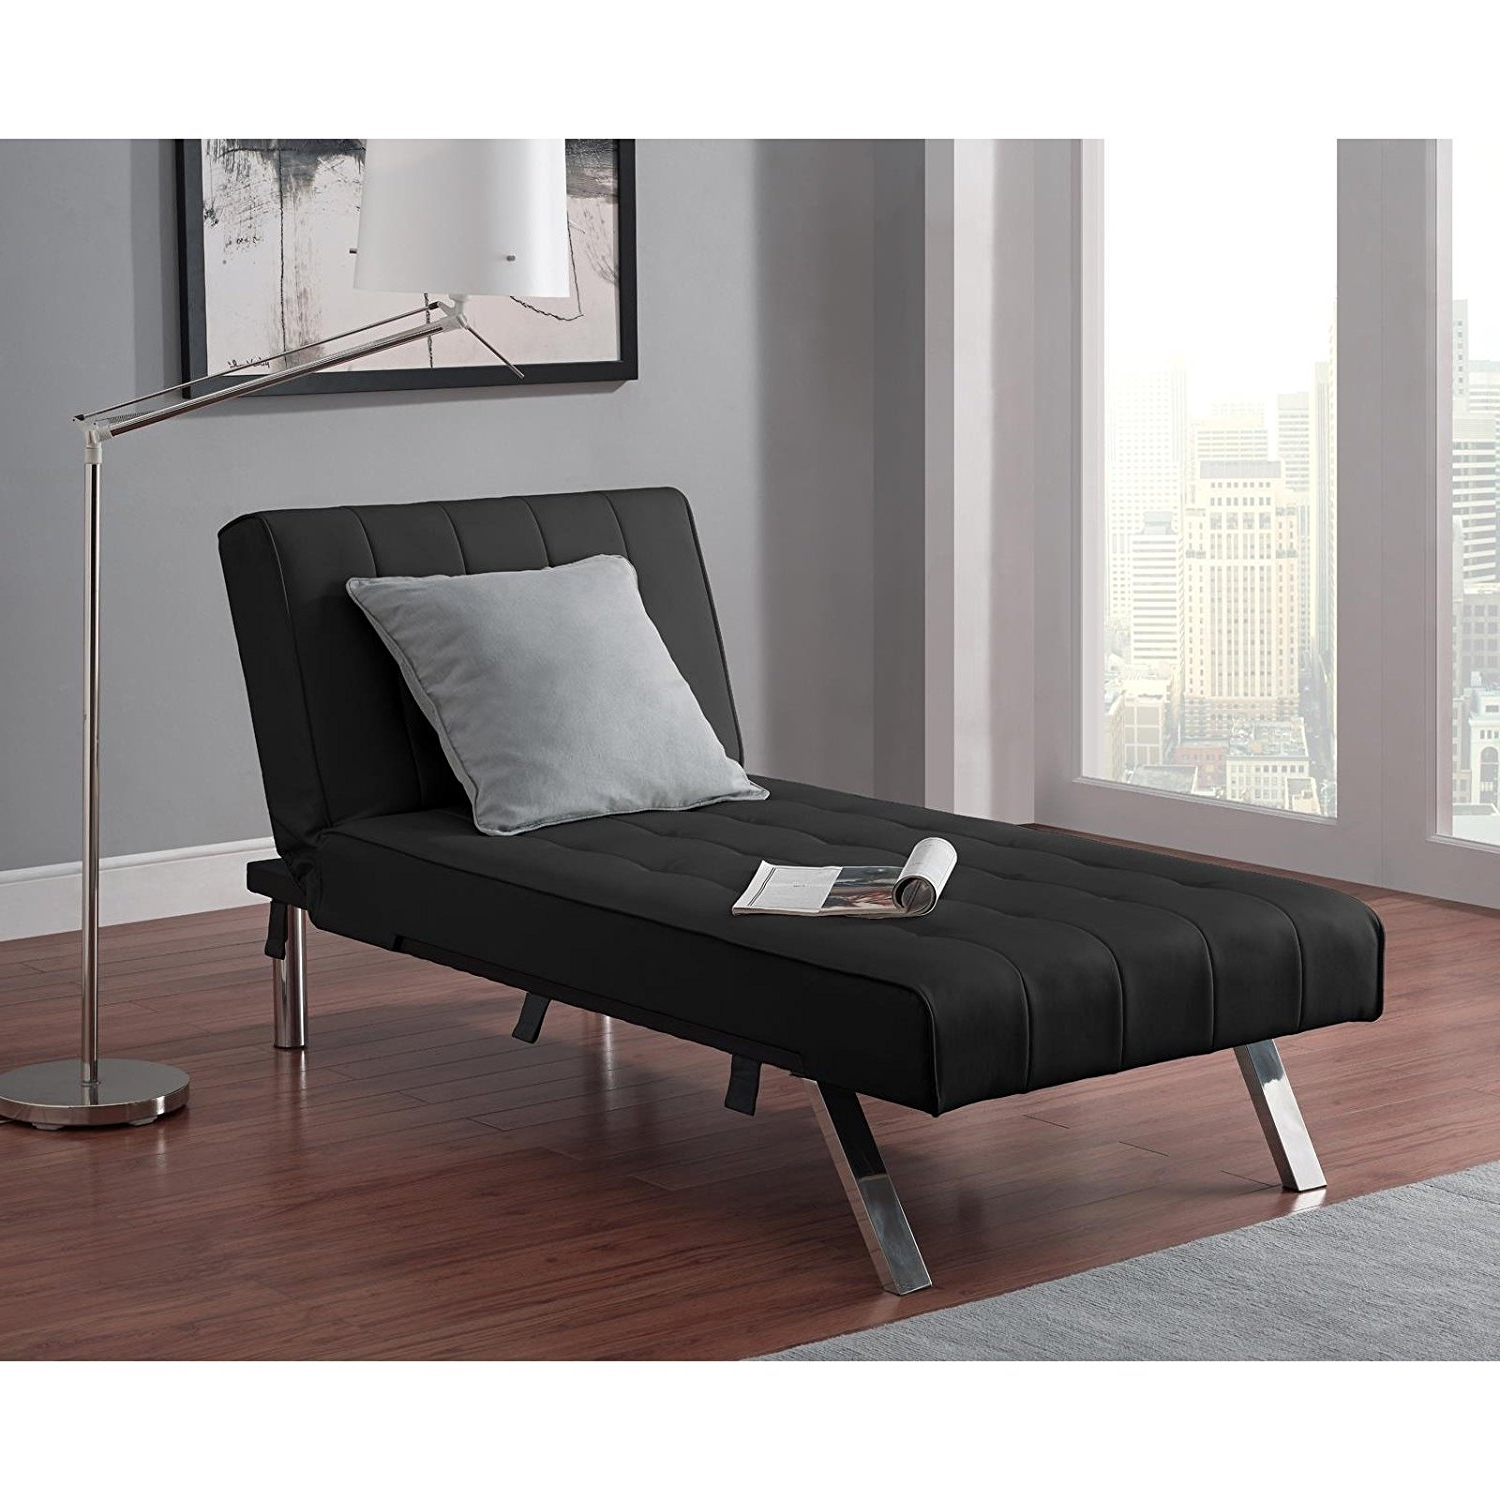 Emily Chaise Lounges In Well Known Amazon: Emily Futon With Chaise Lounger Super Bonus Set Black (View 3 of 15)